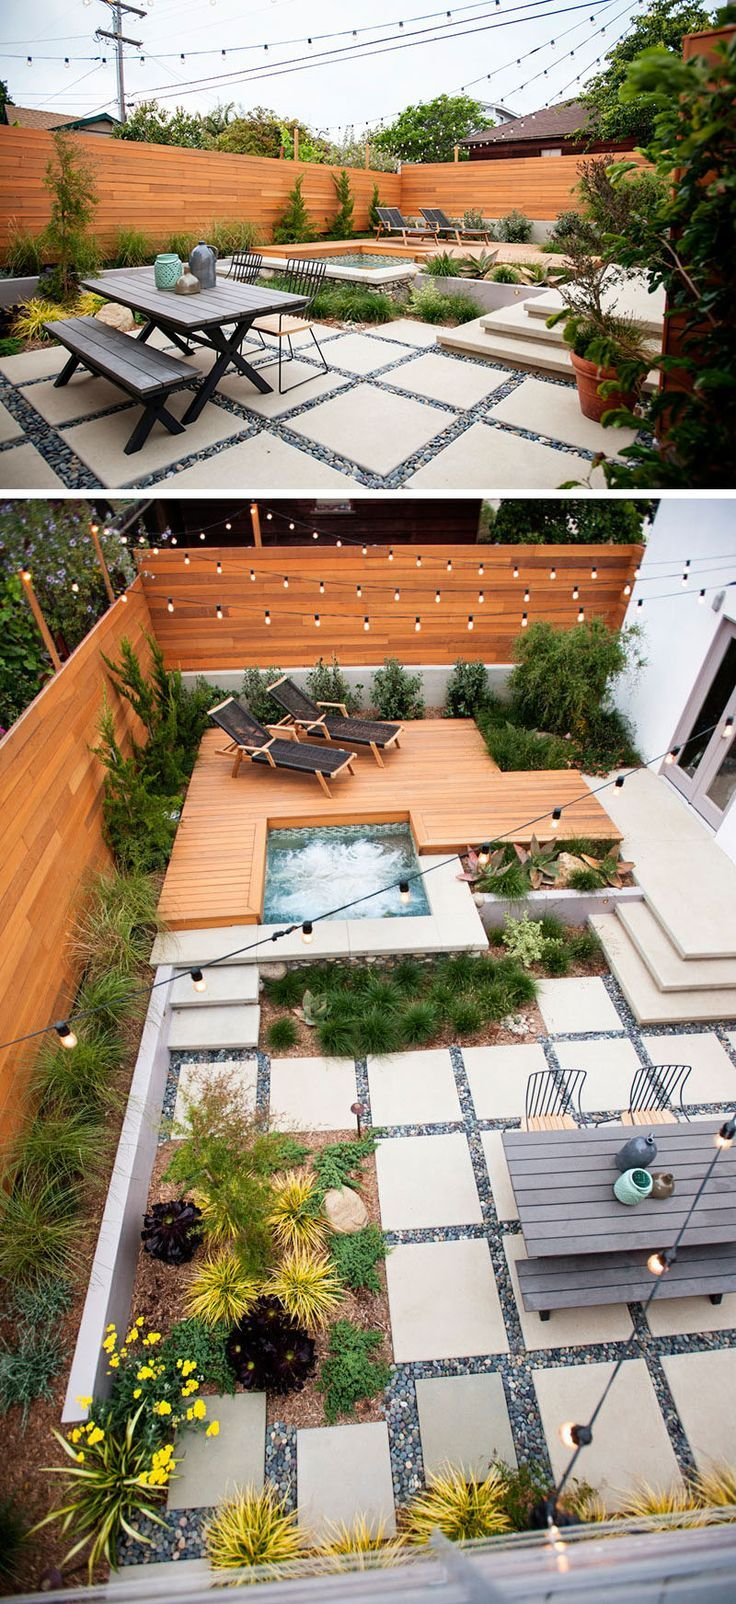 Landscaping Design Ideas 11 Backyards Designed For Entertaining regarding Landscaping Pictures Of Backyards